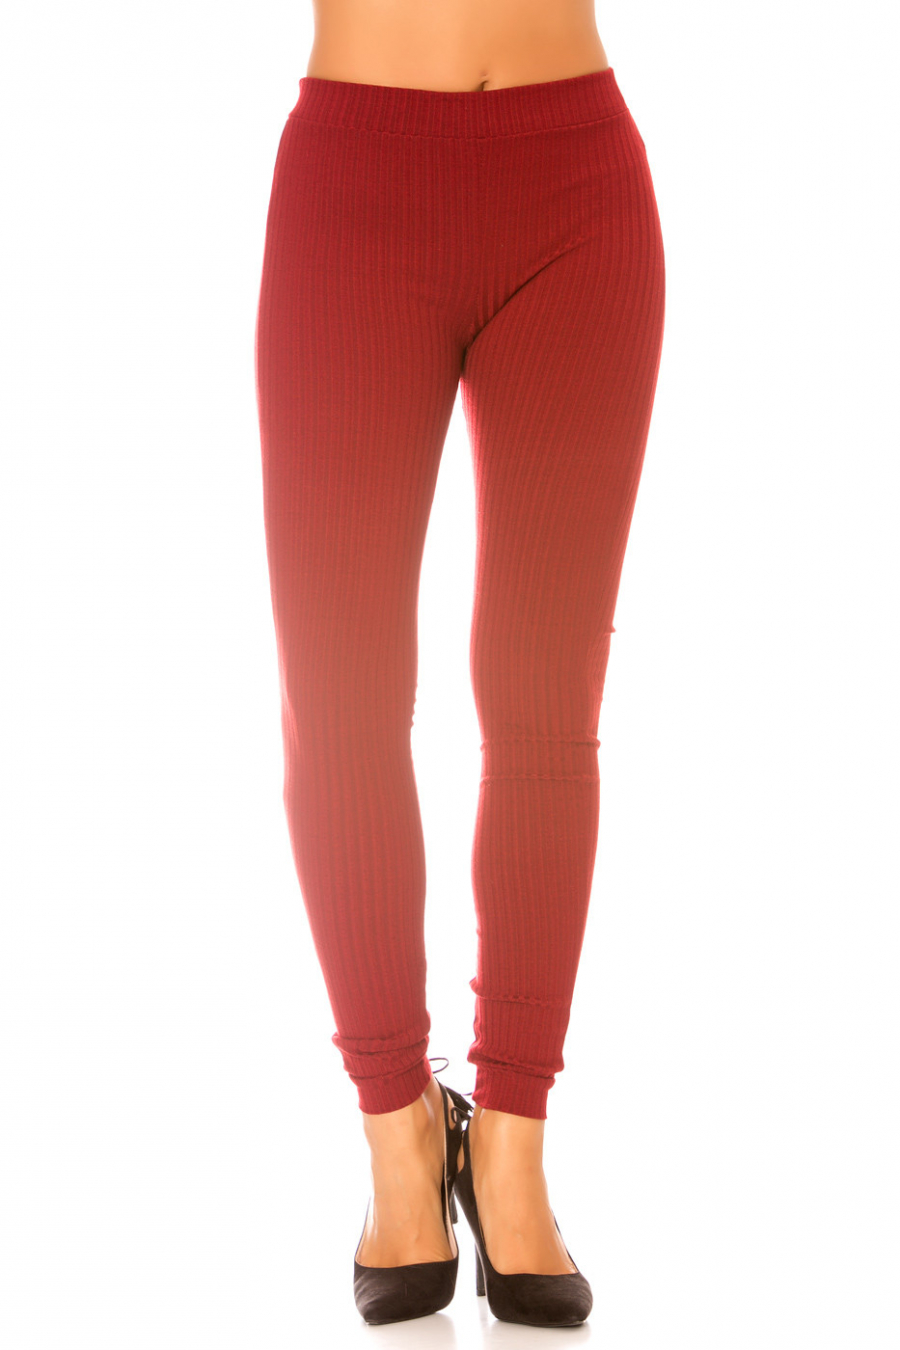 Bordeaux knitted leggings - Winter trend - 7116/7113